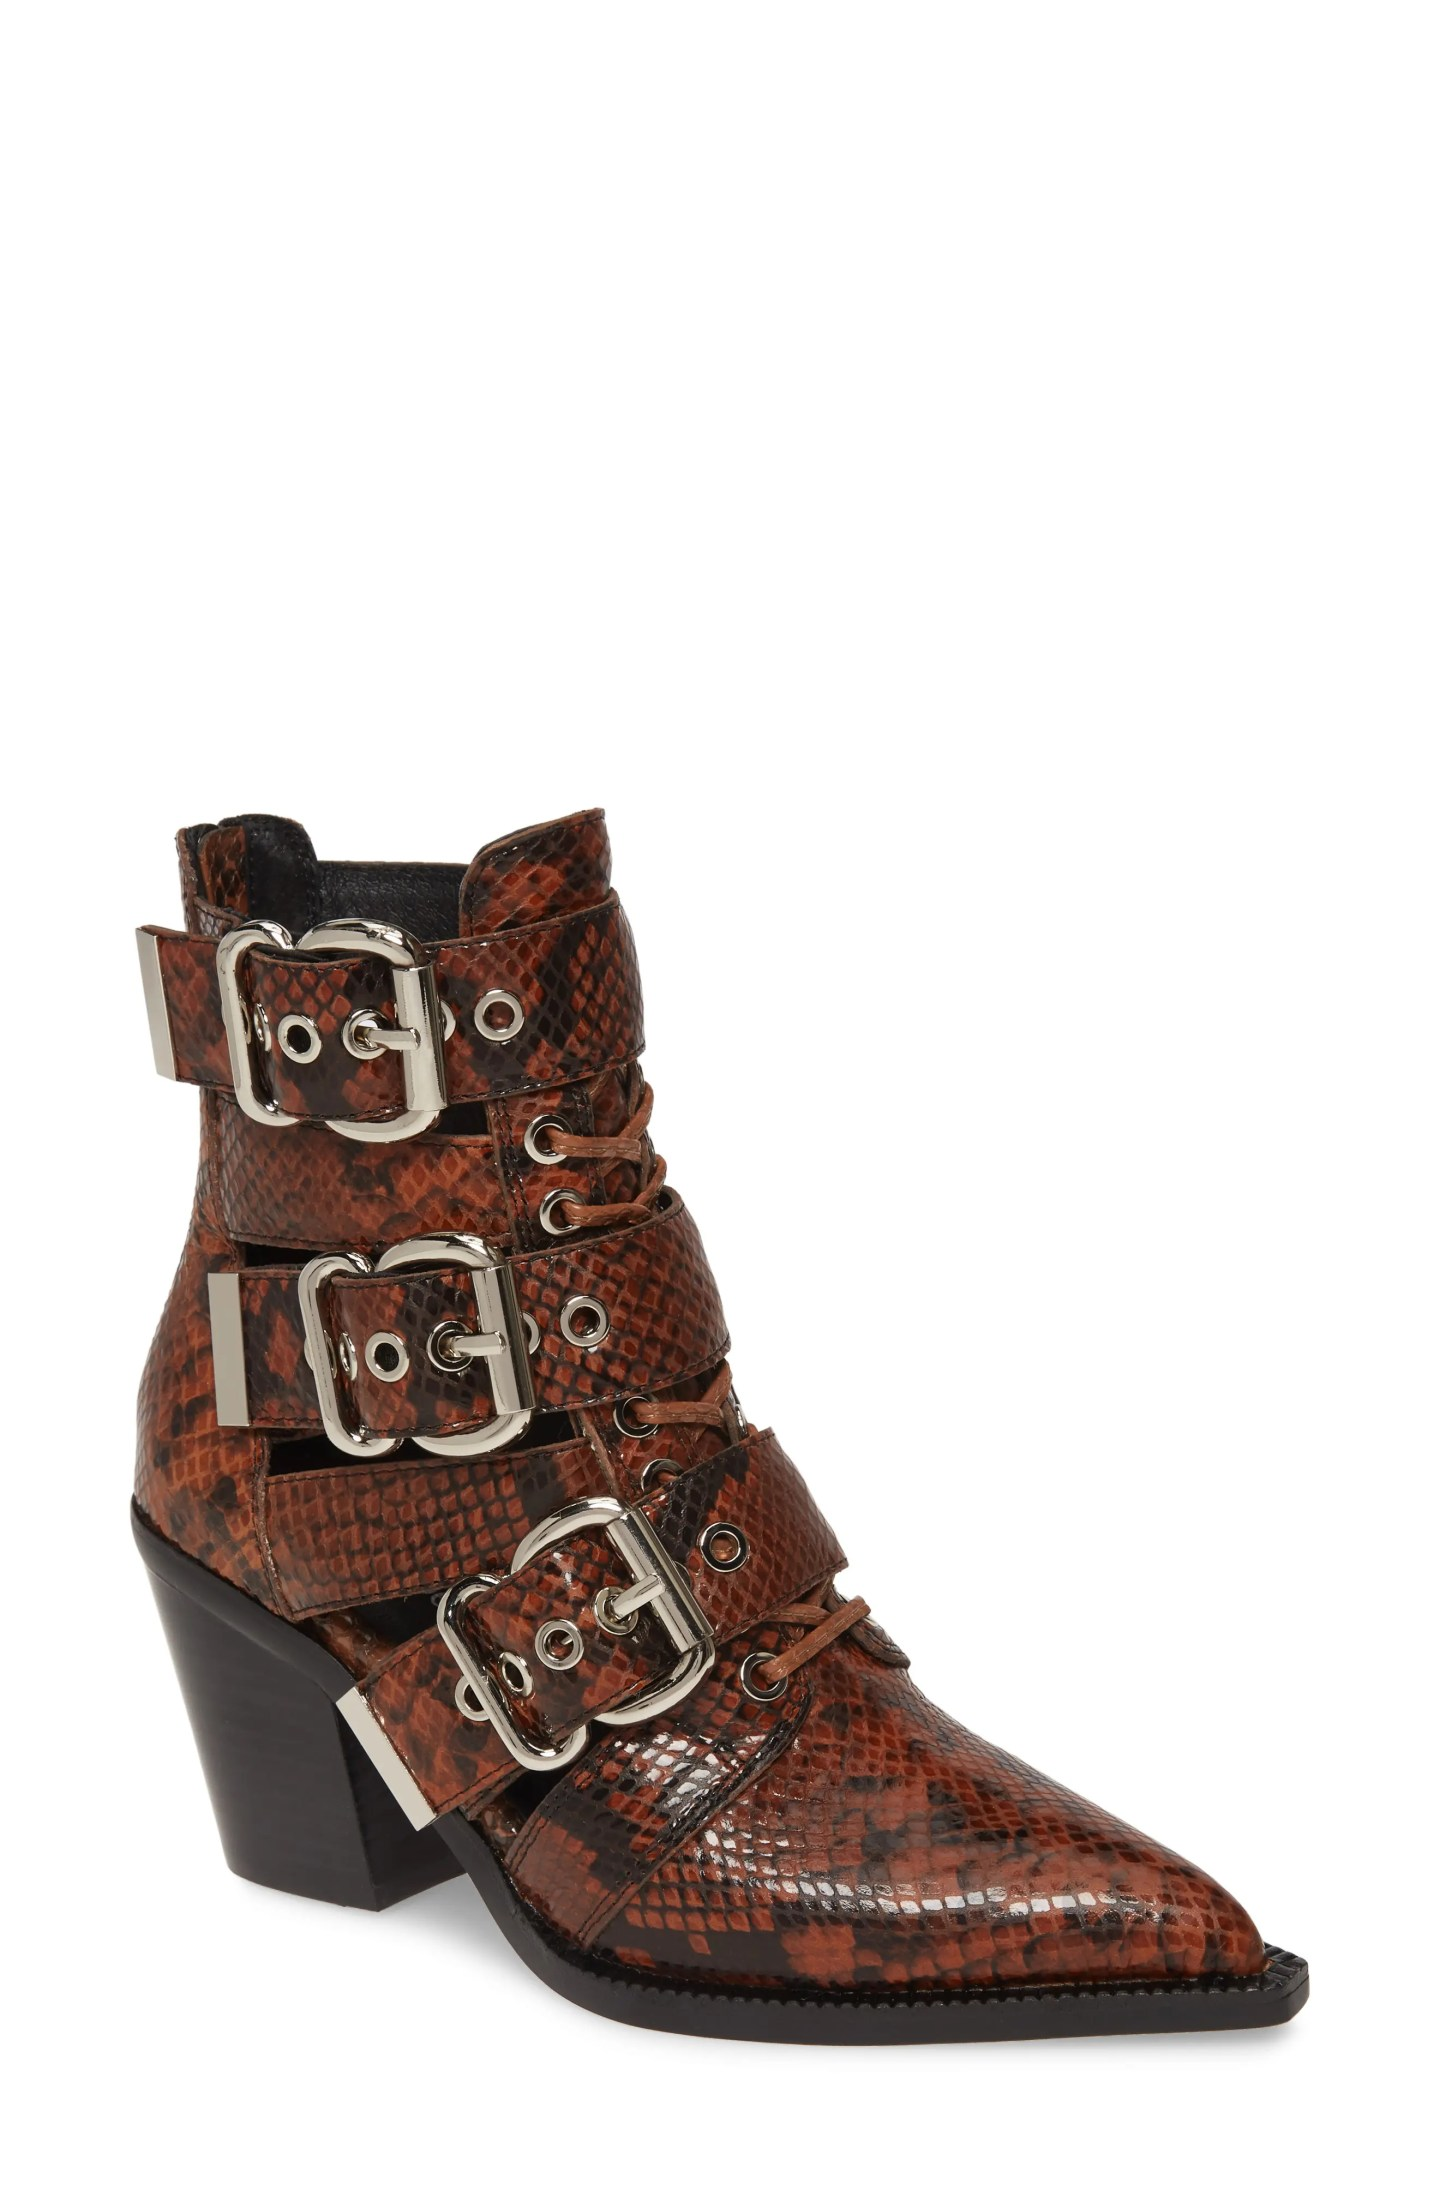 JEFFREY CAMPBELL Caceres Bootie, Main, color, BROWN BLACK SNAKE PRINT